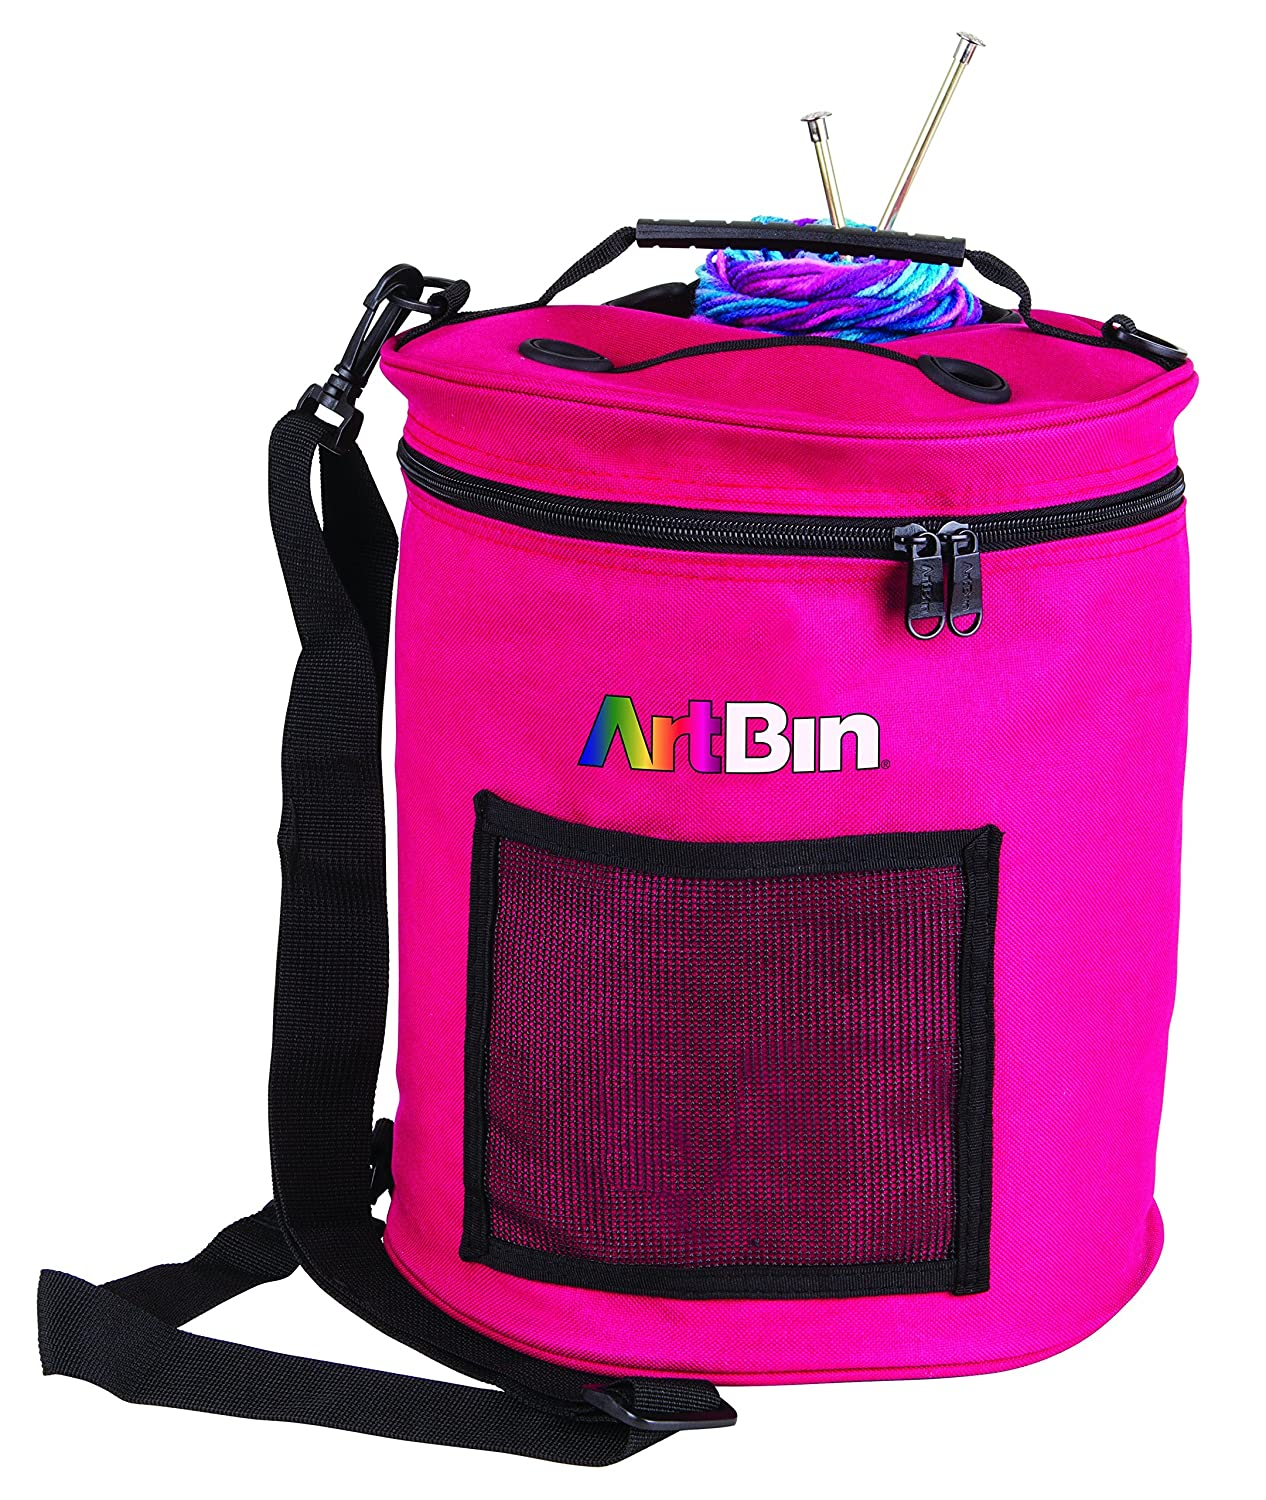 ArtBin 6805SA Yarn Drum 6806SA Knitting and Crochet Tote, Raspberry Flambeau